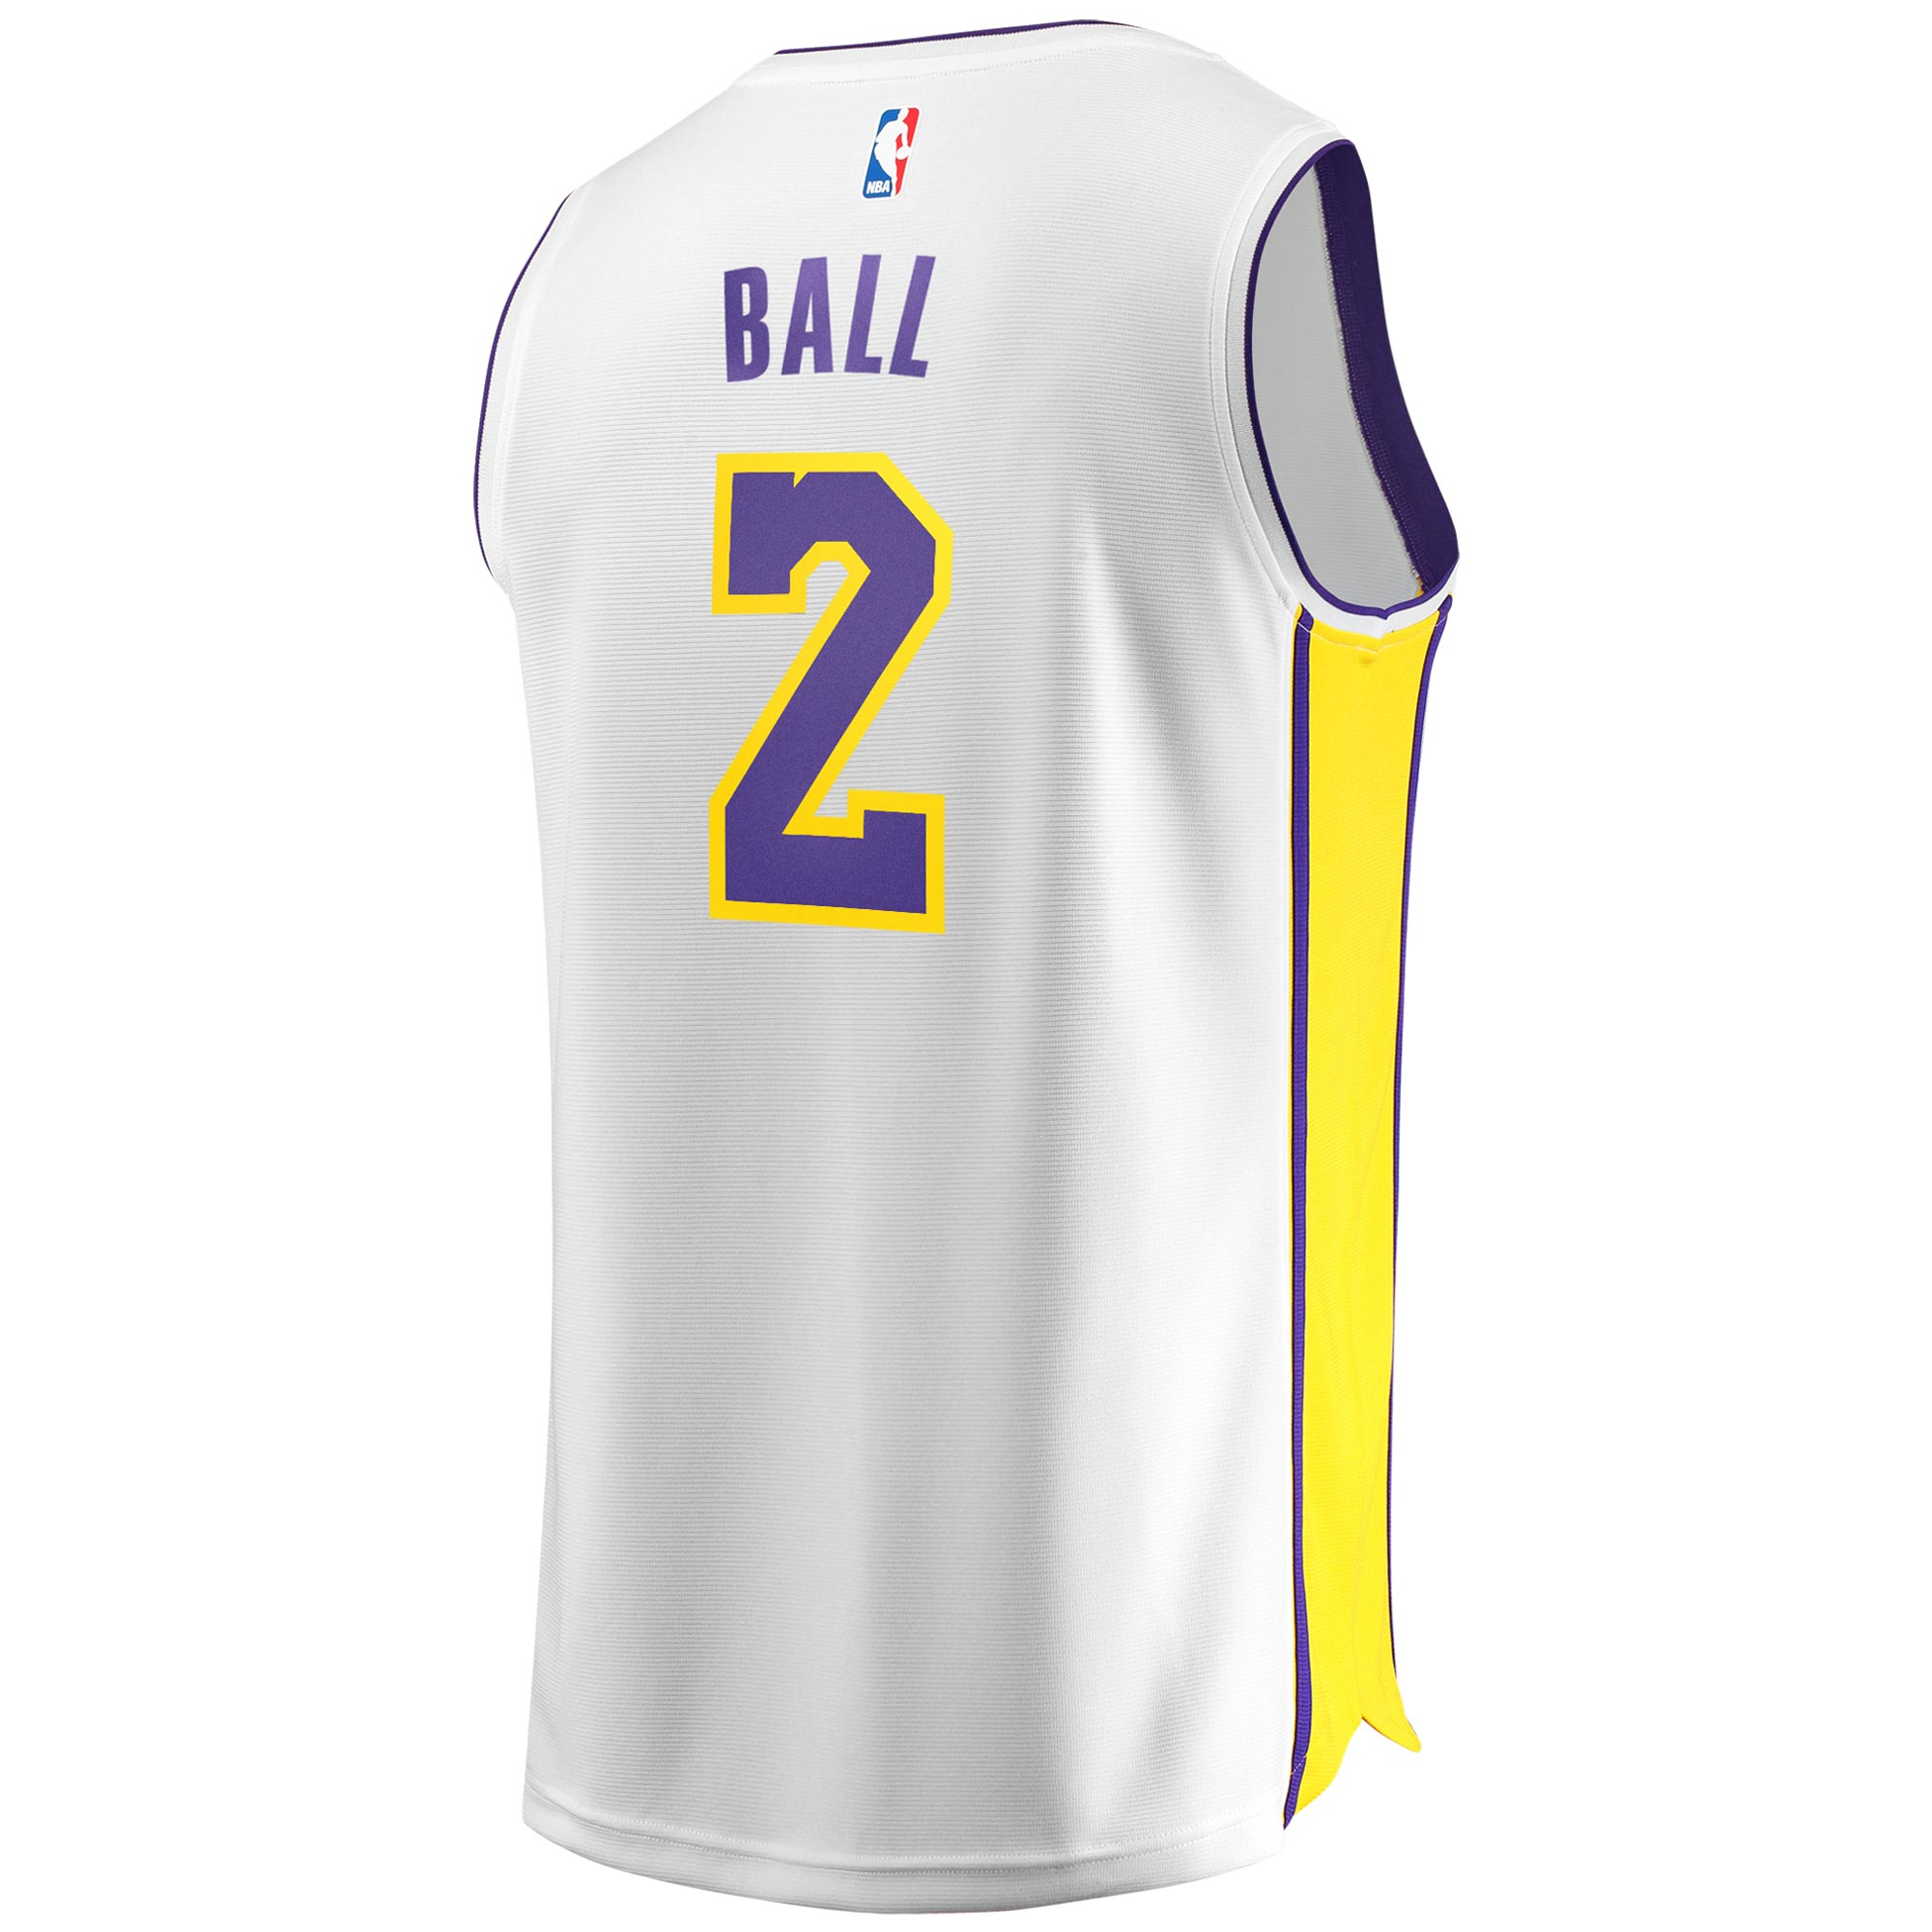 best service 5d812 2547e Lonzo Ball Los Angeles Lakers Fanatics Branded Youth Fast Break Replica  Jersey White - Association Edition